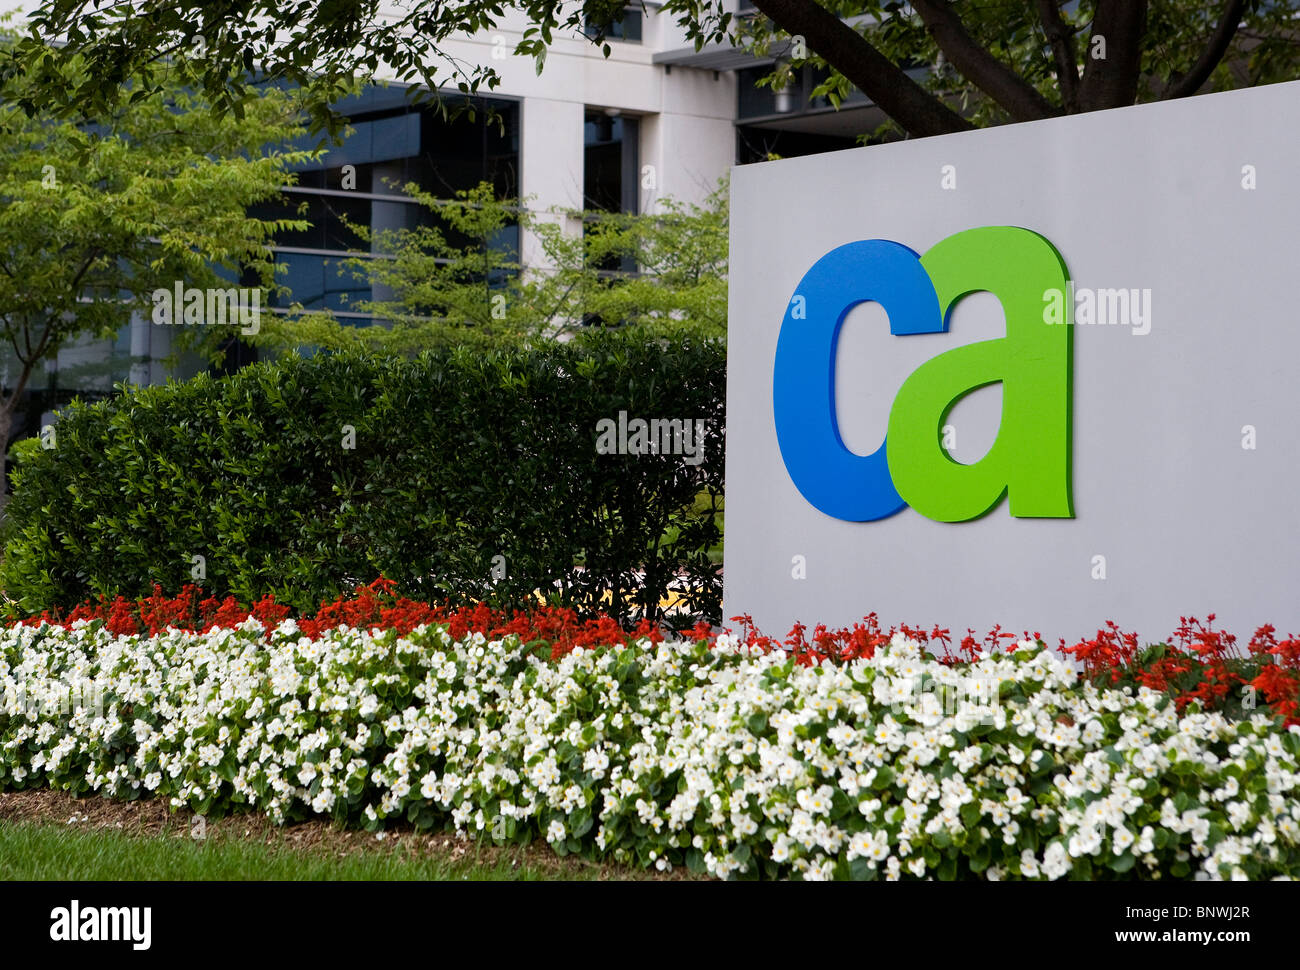 CA Technologies. - Stock Image